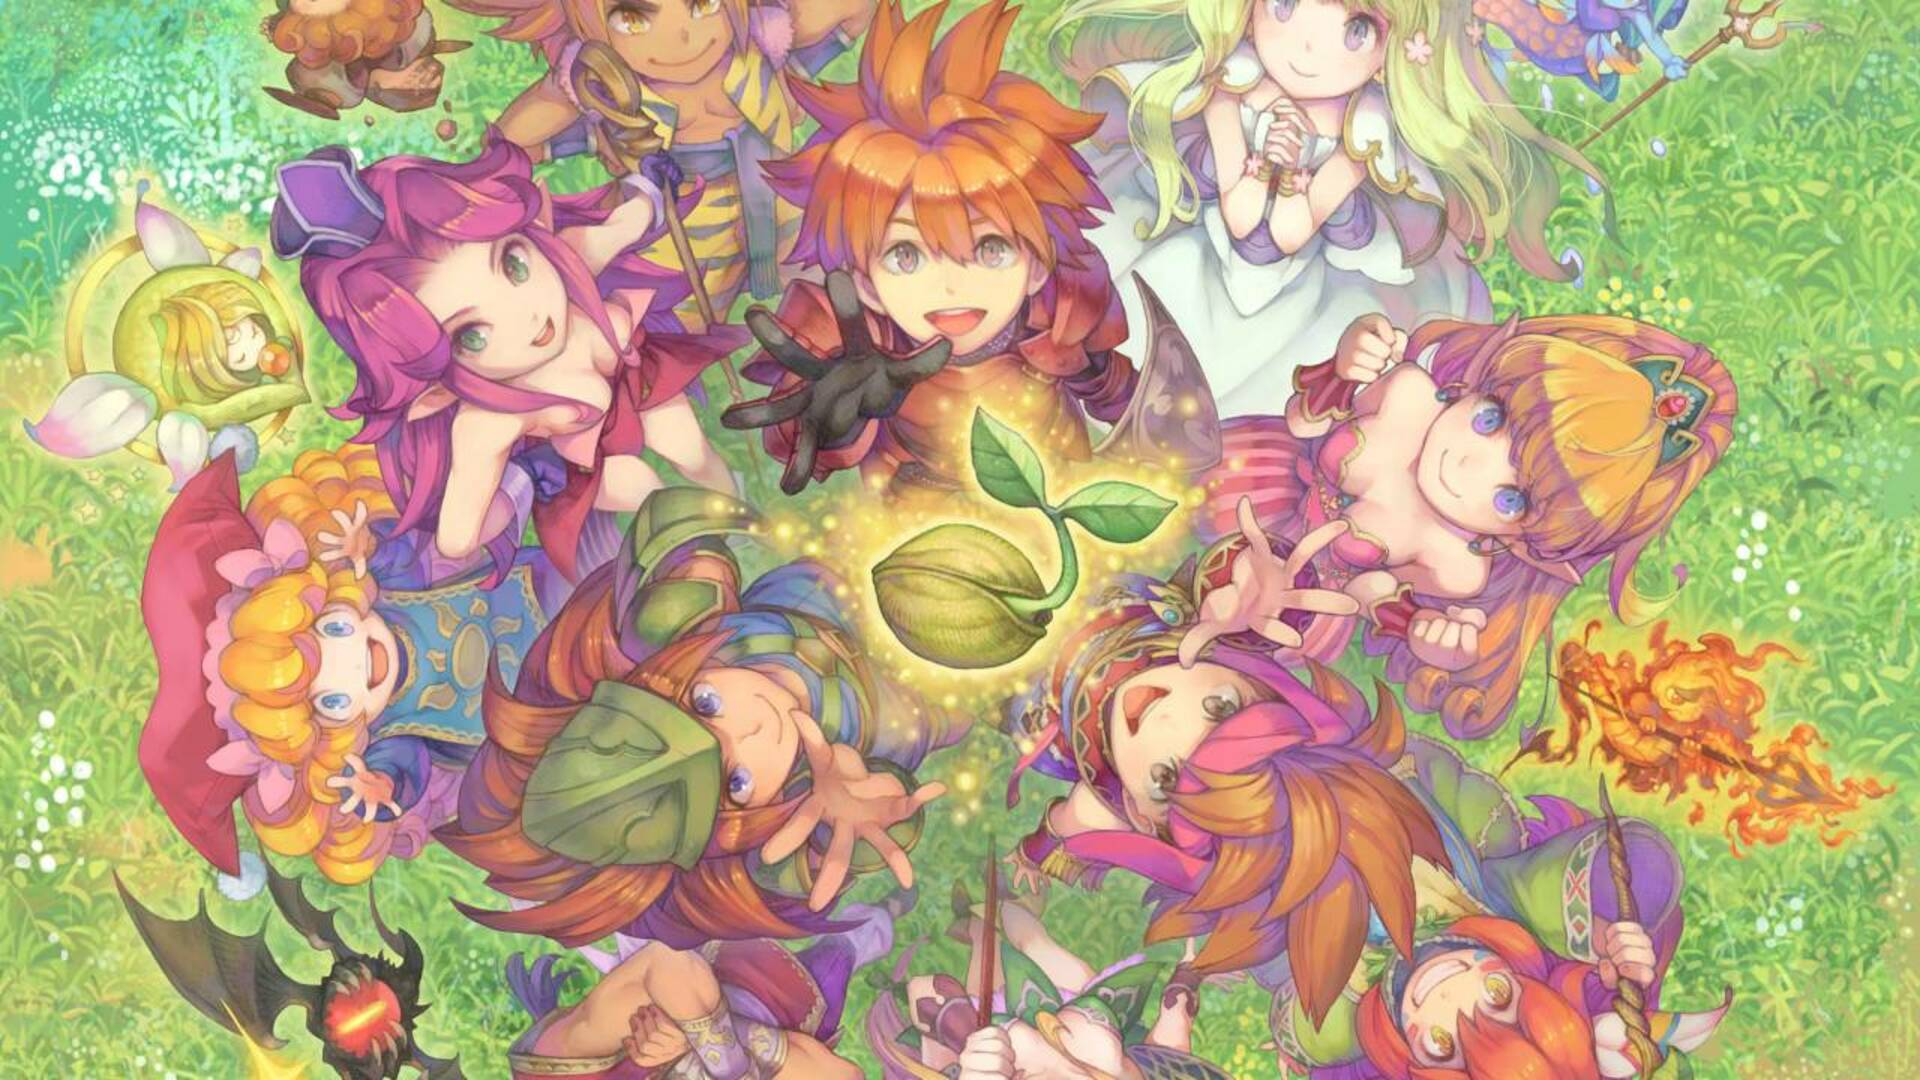 """""""Collection of Mana"""" Resurfaces Through New Square Enix Trademark"""